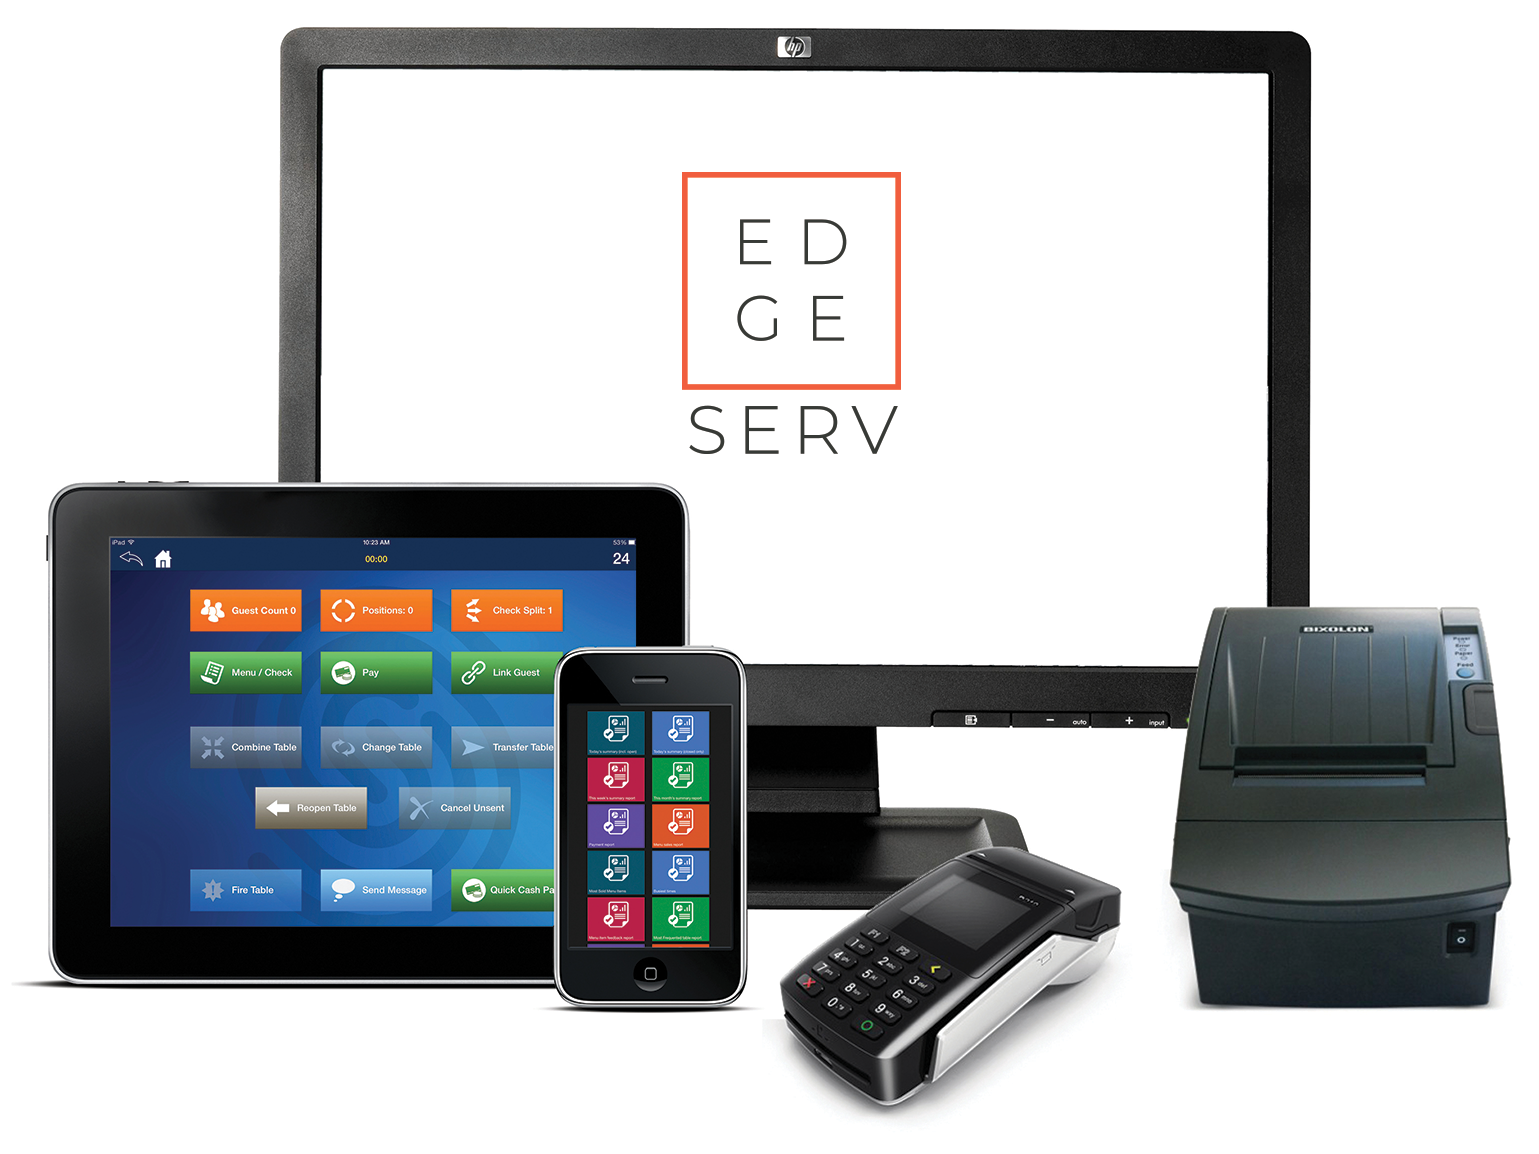 EdgeServ POS - from the Cloud to the Kitchen